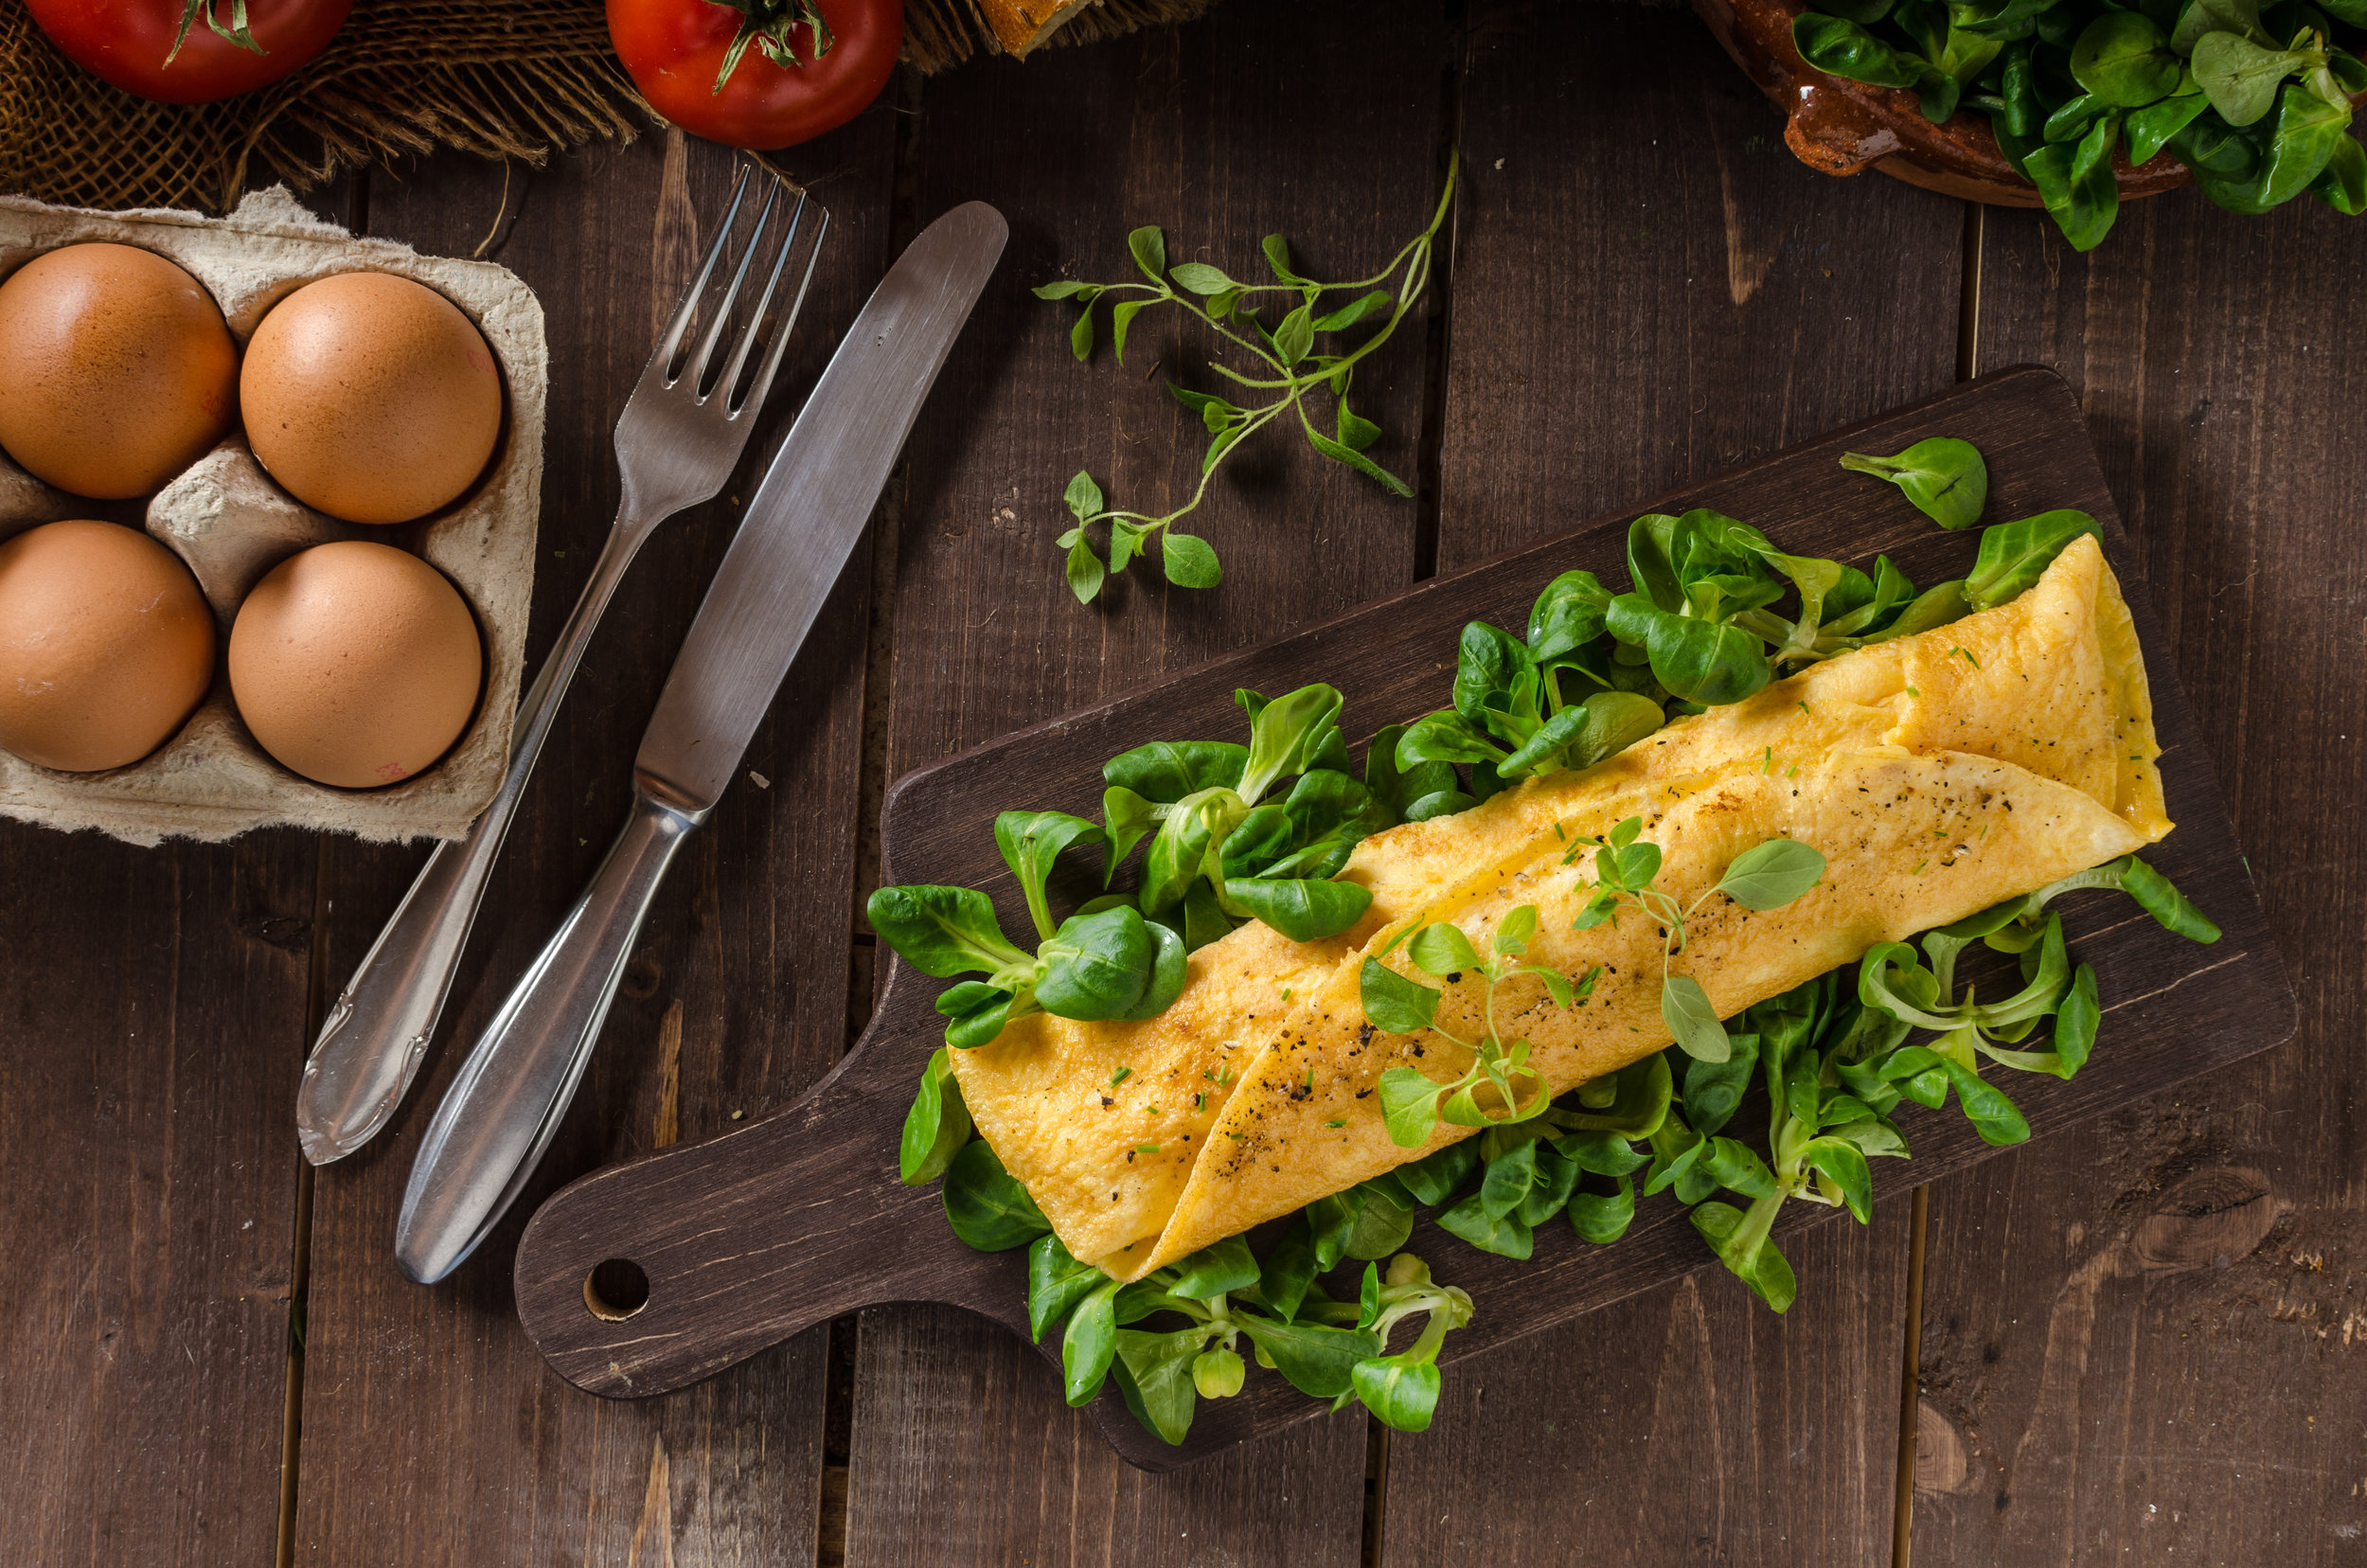 Online Personal Trainer Lunch Recipes -Salmon & Egg Roll.jpg